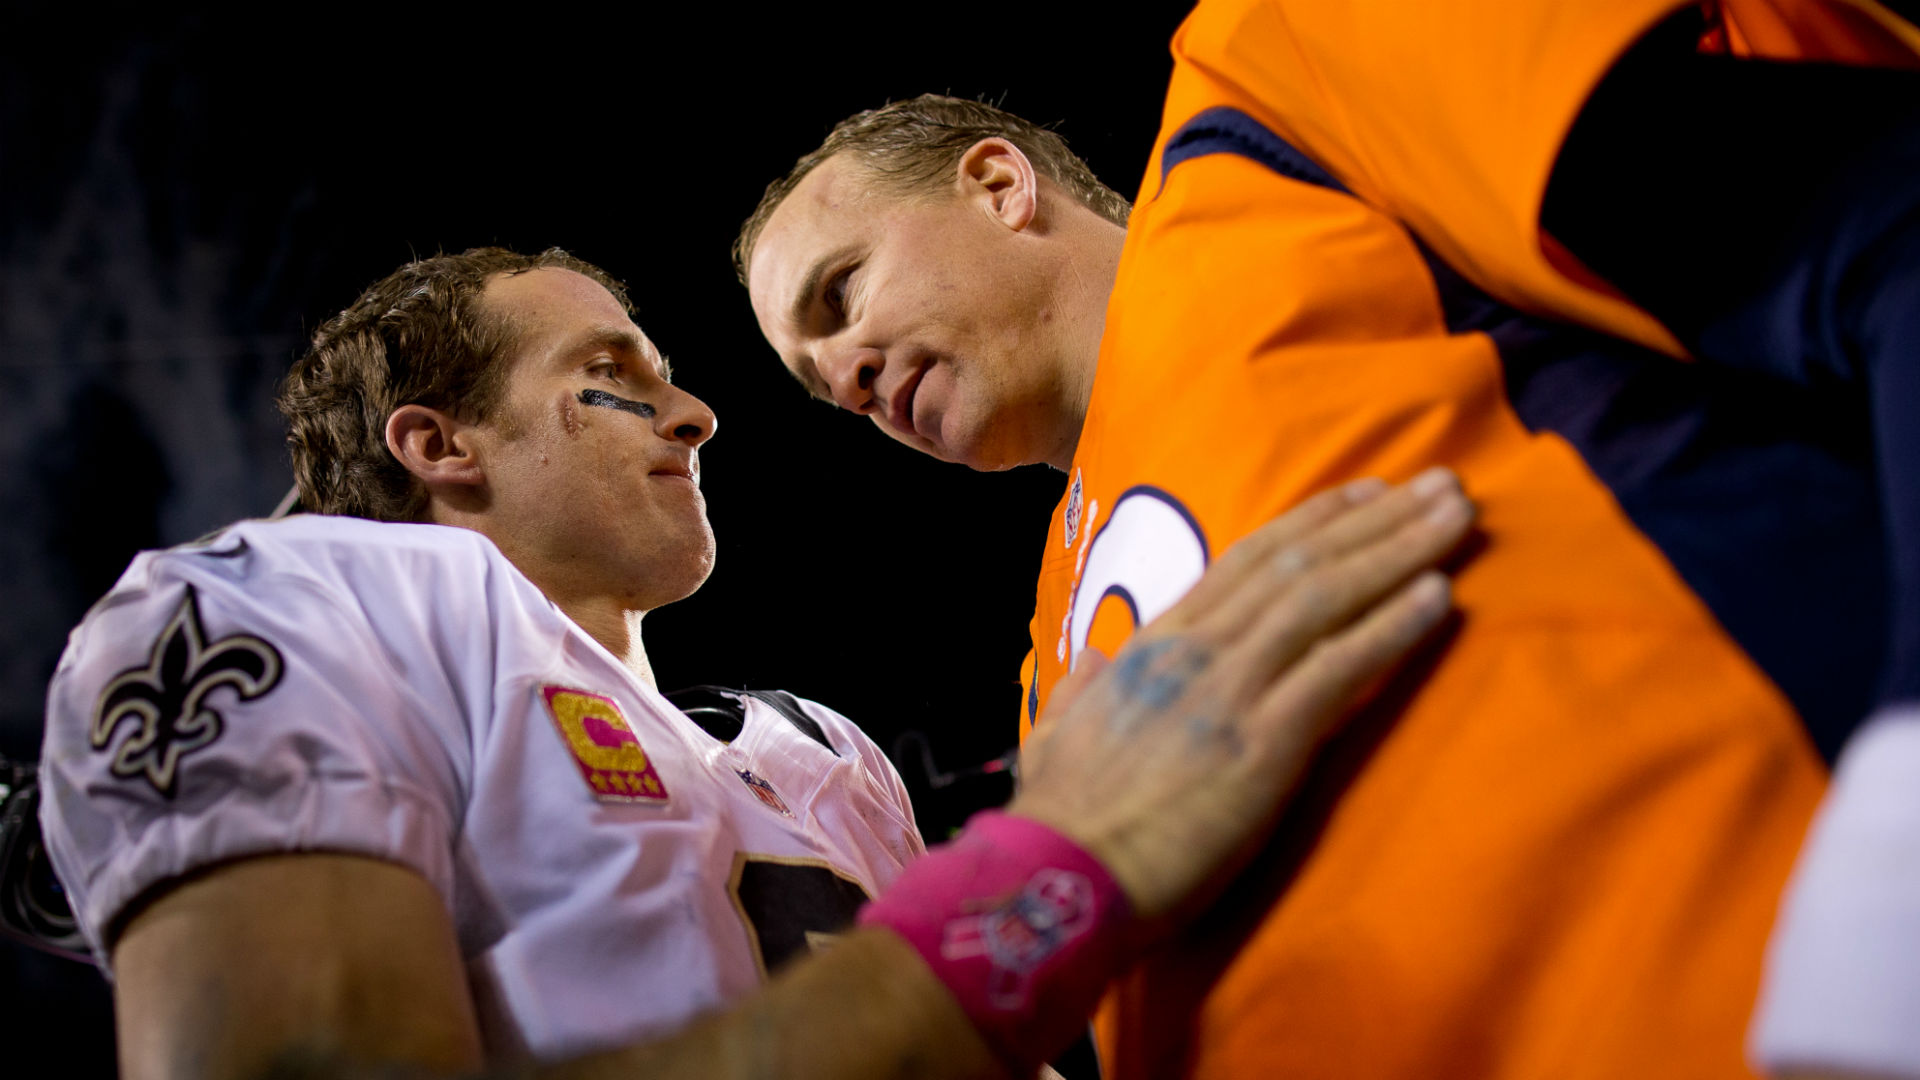 Peyton Manning gives hilarious congrats to Brees